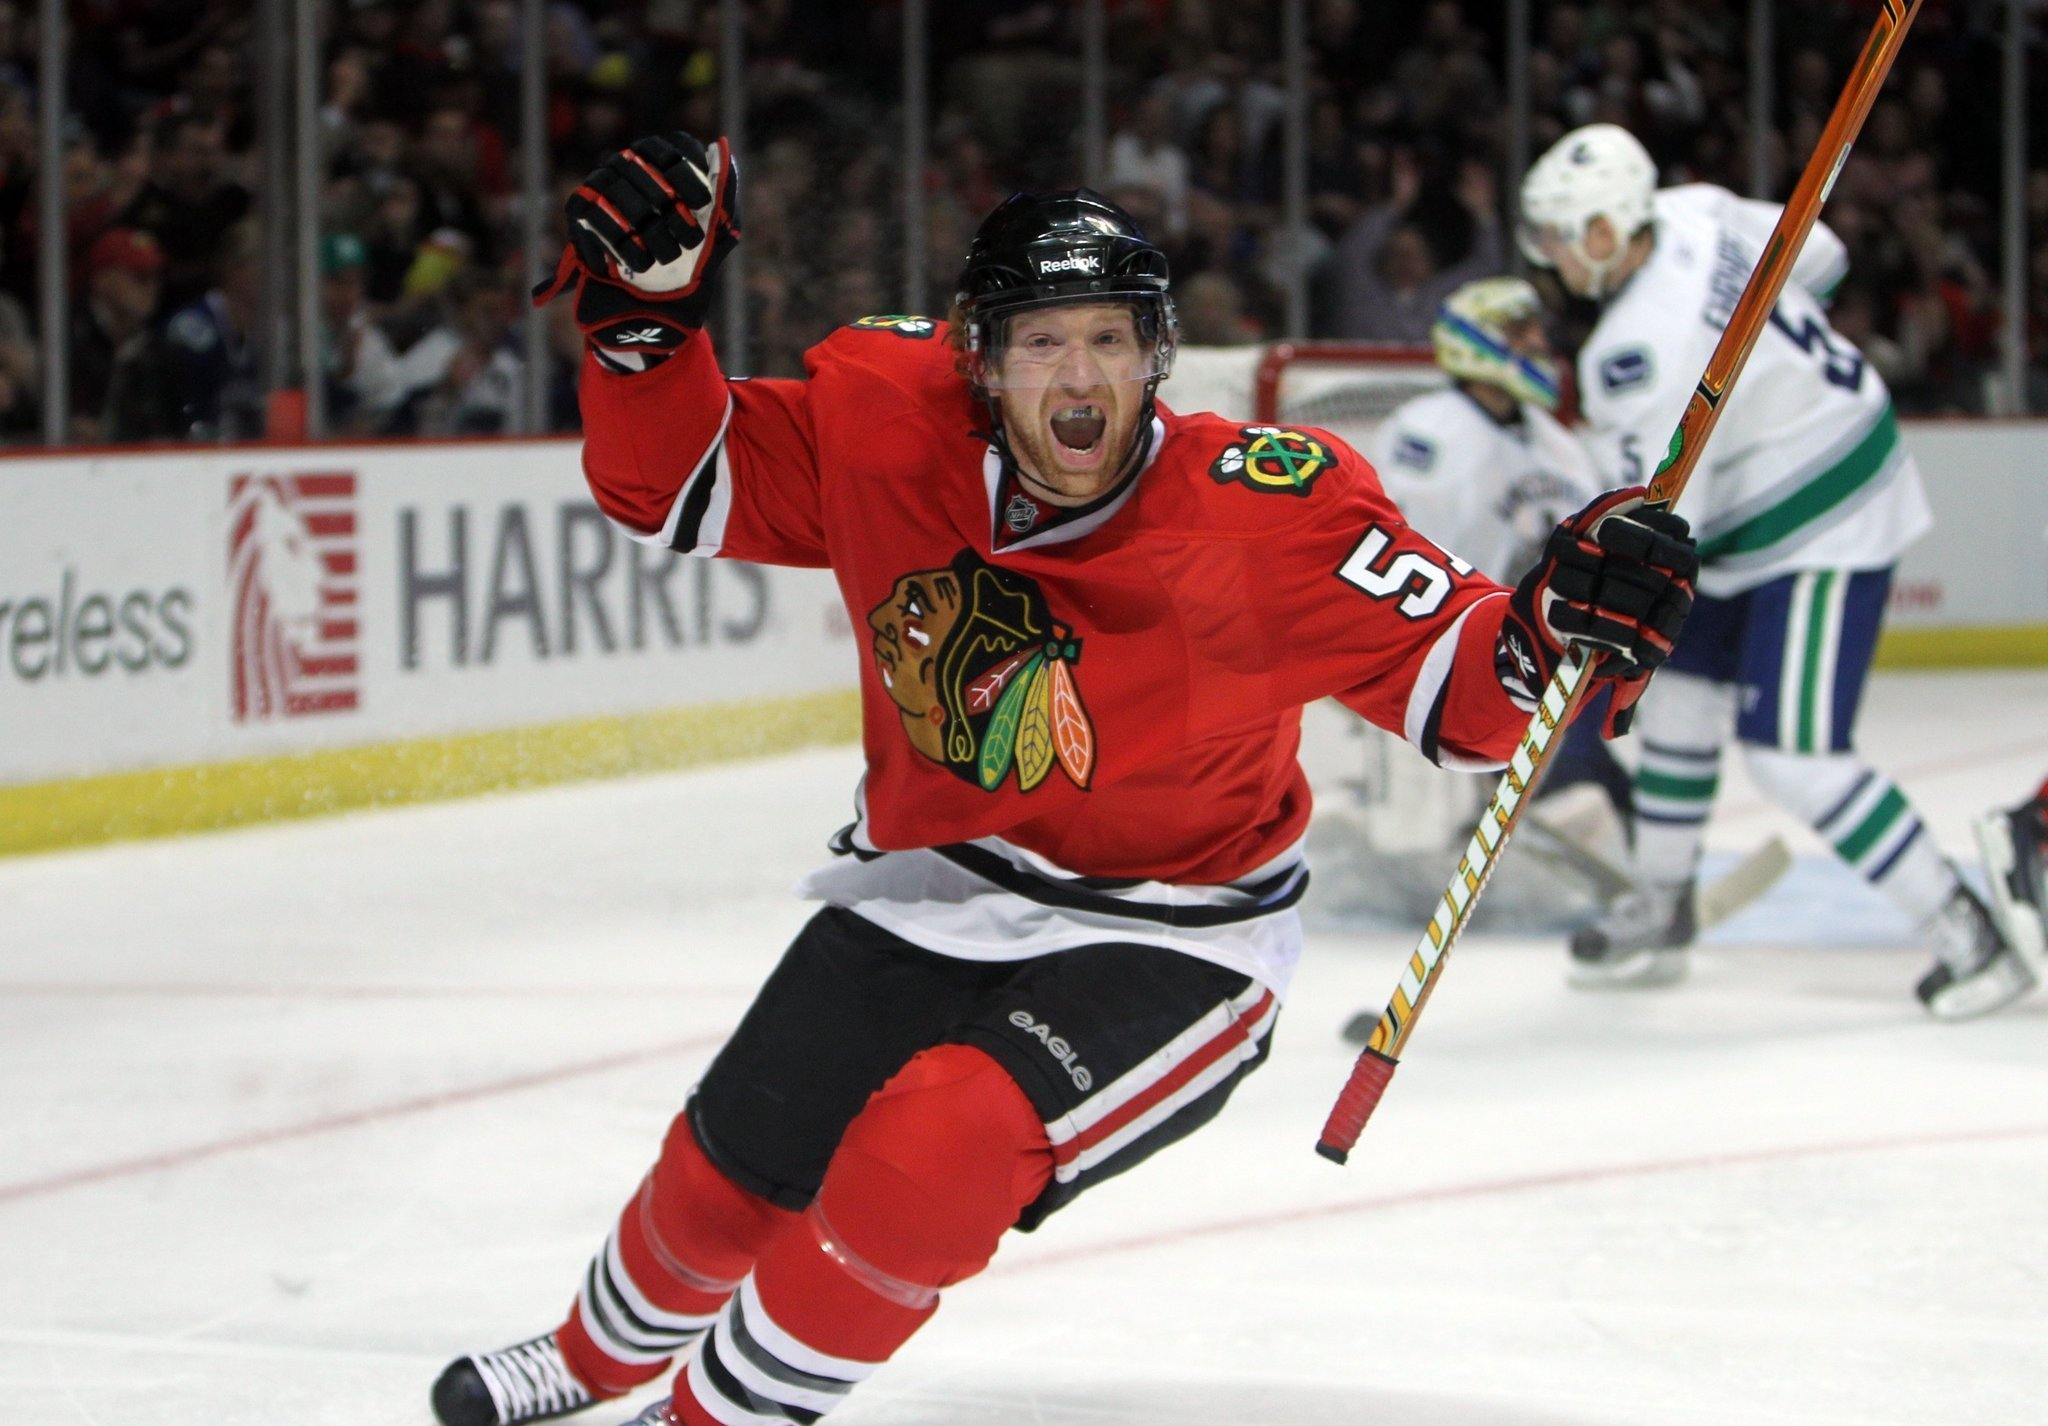 Sfl-panthers-free-agent-defenseman-brian-campbell-wants-to-return-to-blackhawks-20160629